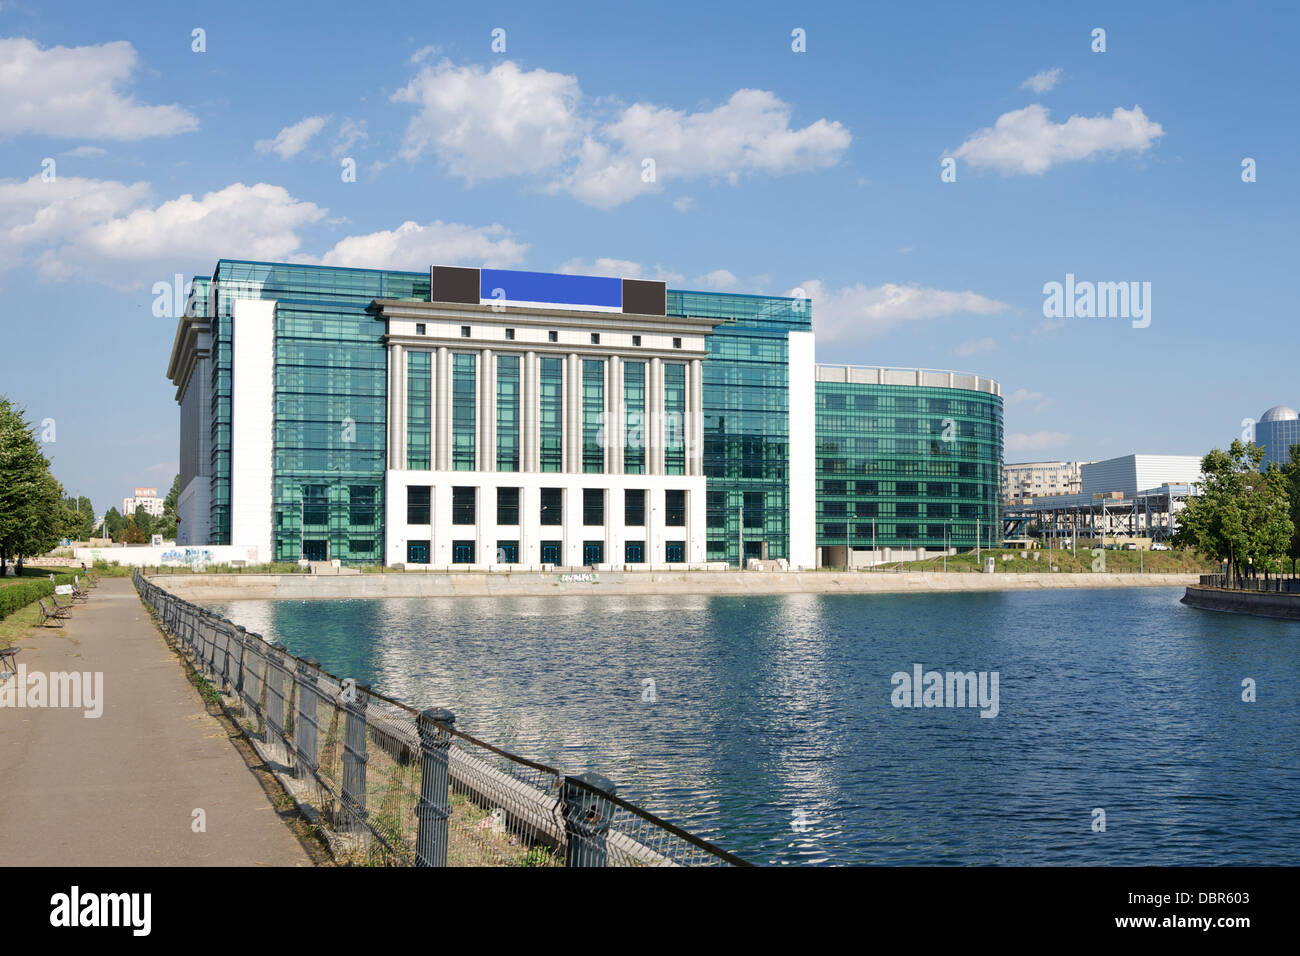 National Library of Romania in Bucharest - Stock Image